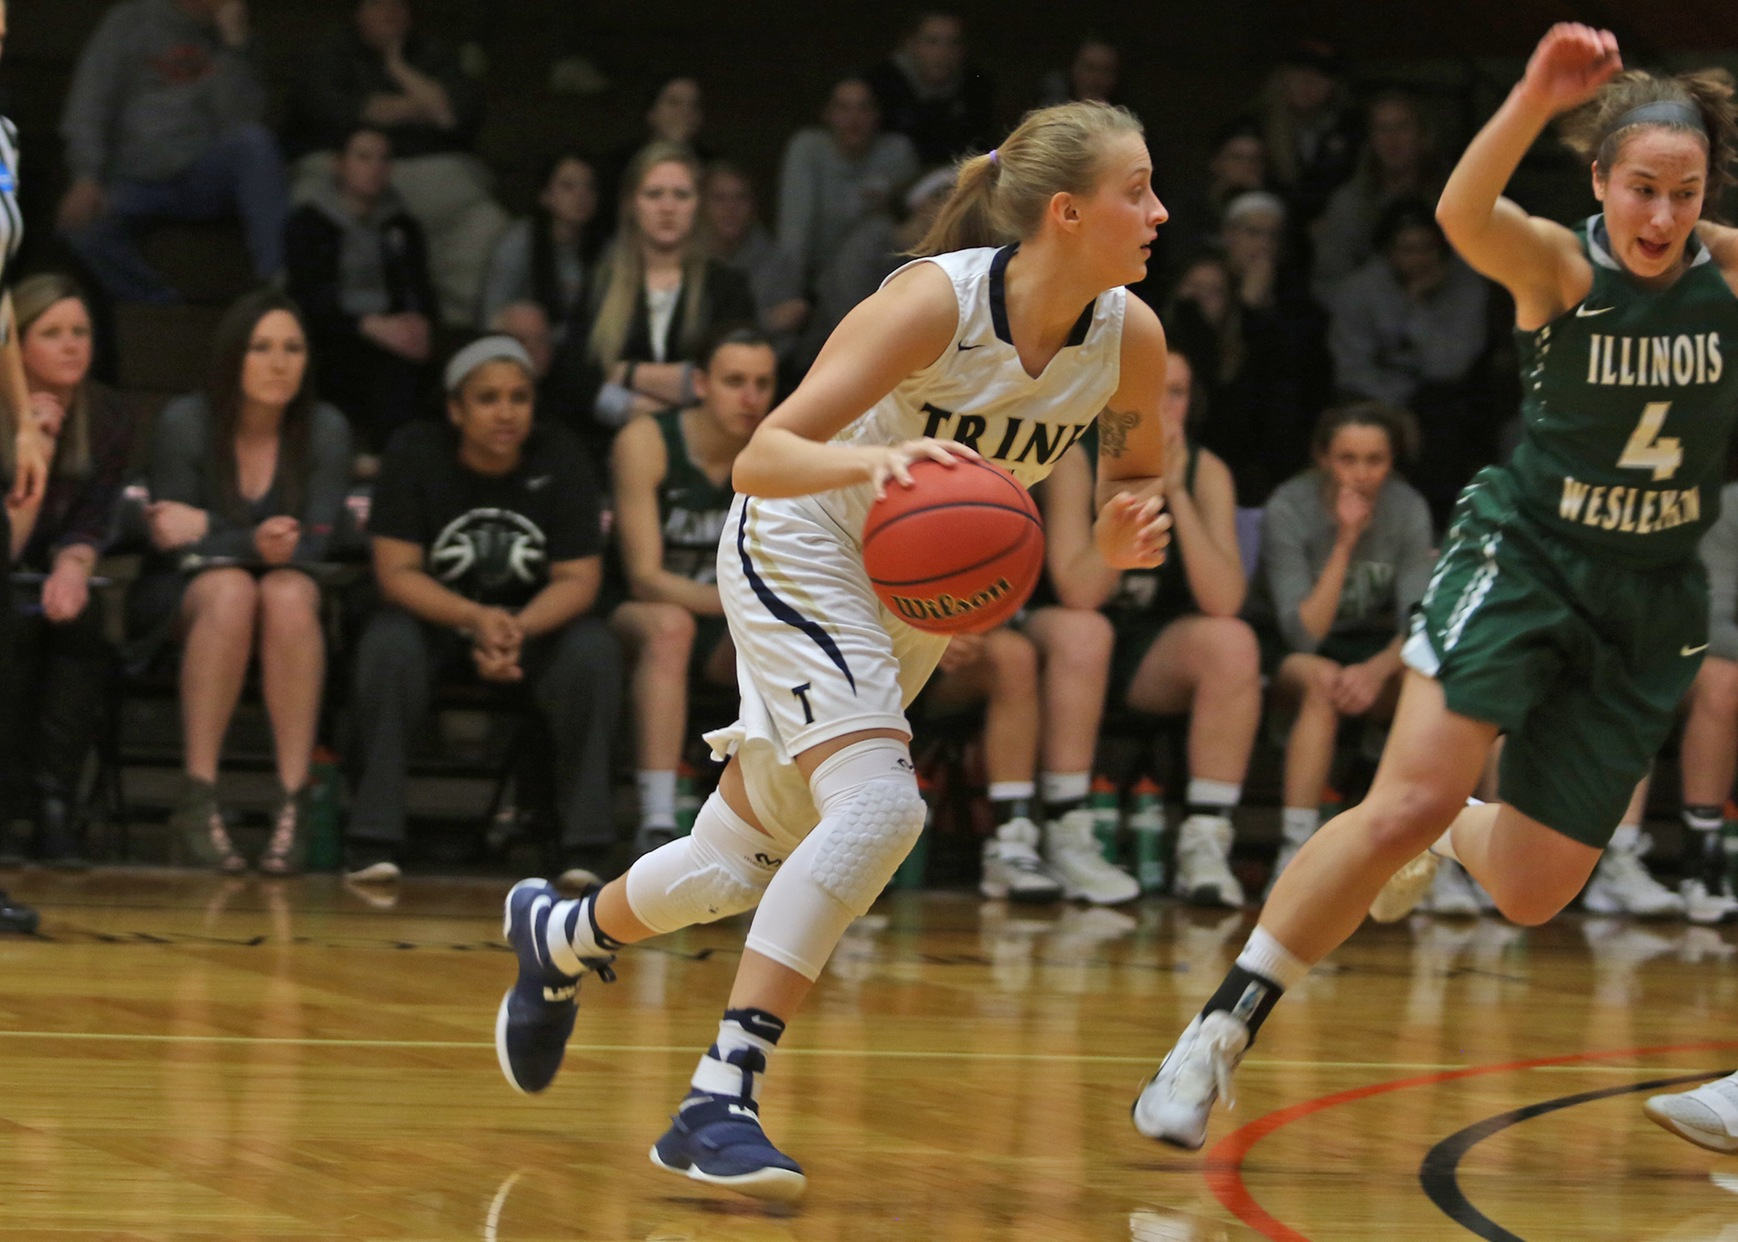 Trine Women's Basketball Wraps Up NCAA Tournament with Loss to Ohio Northern